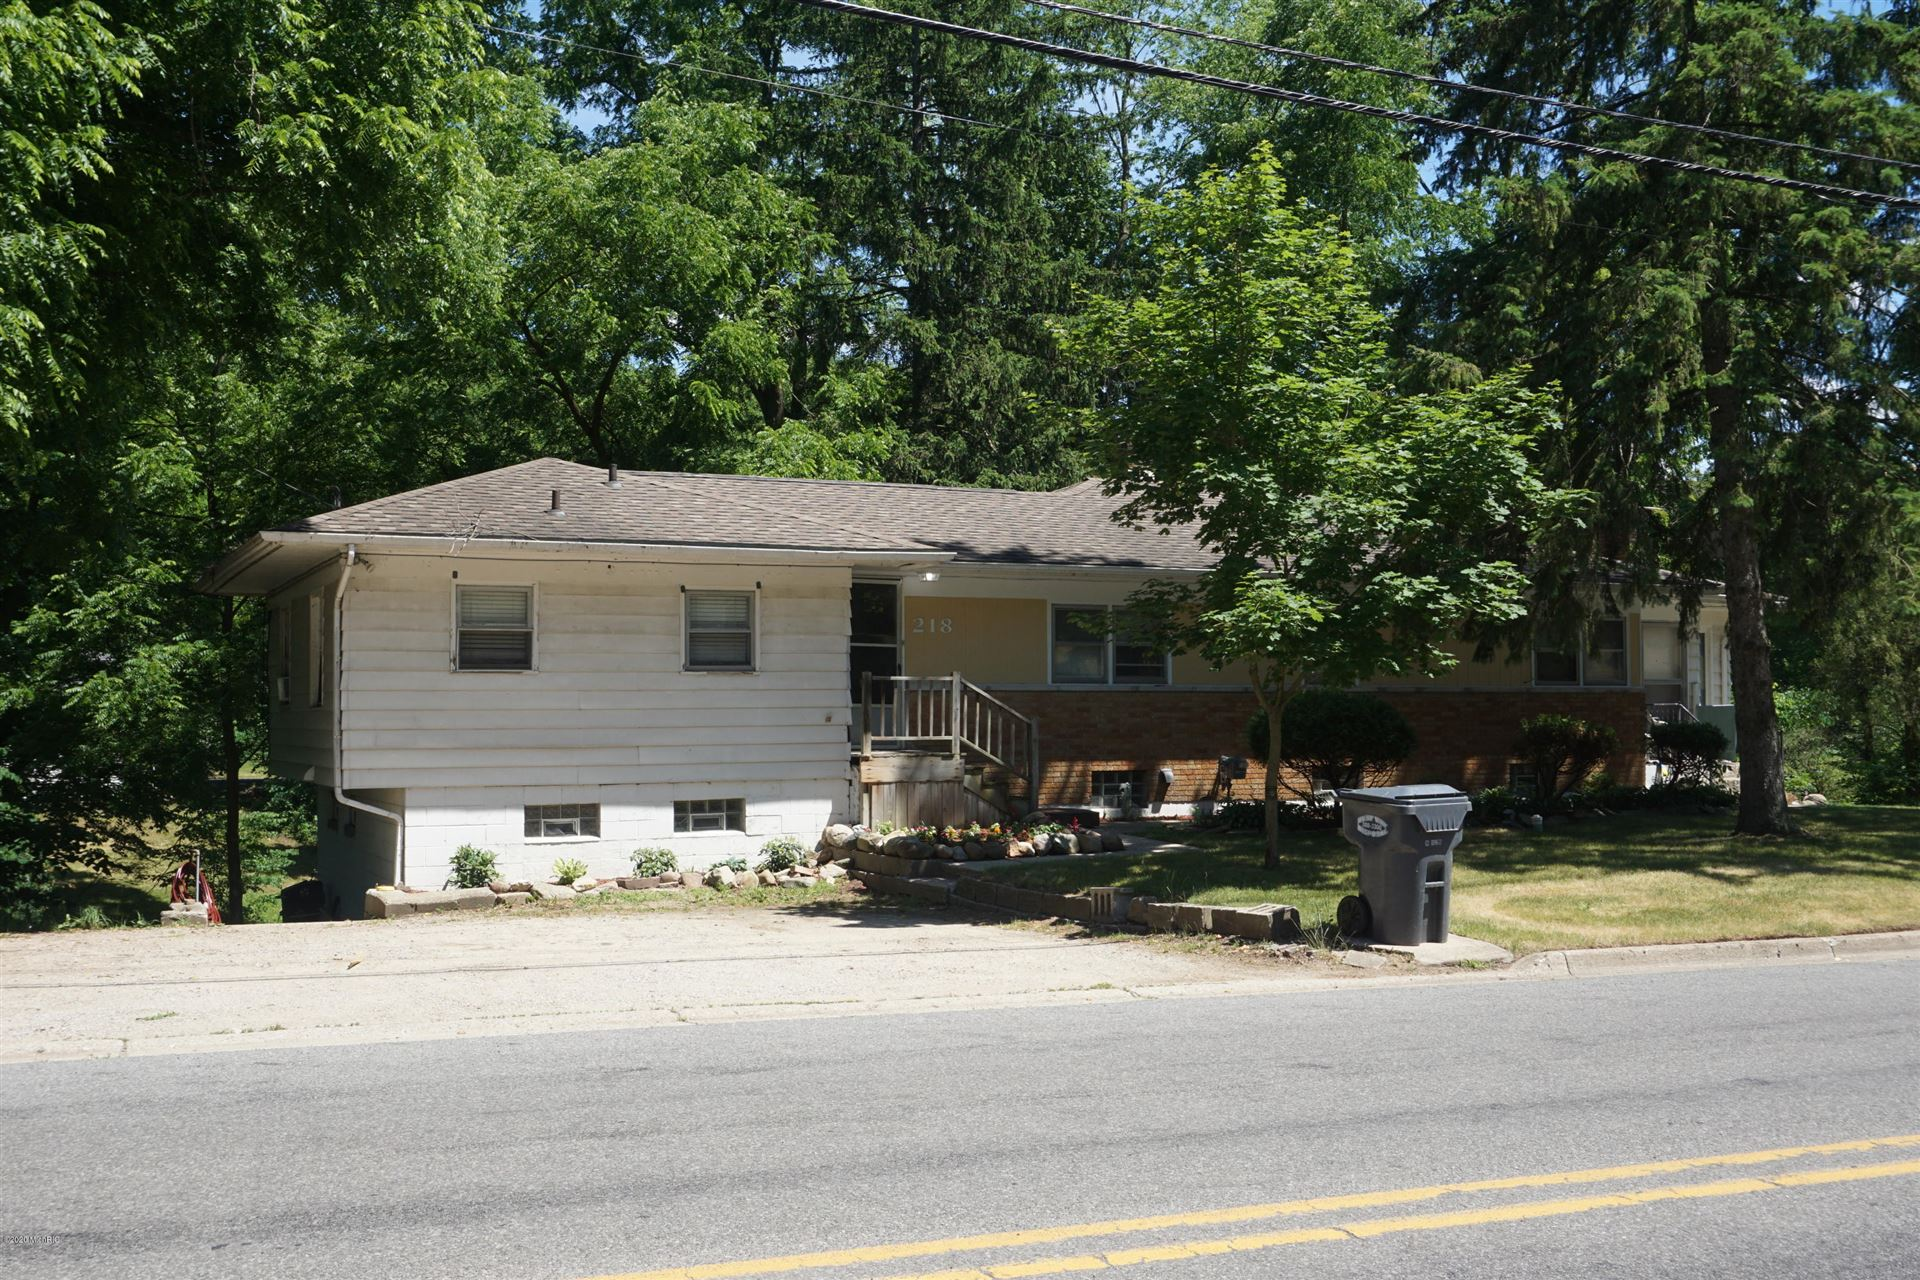 218 N 26th Street, Kalamazoo, MI 49048 - MLS#: 20023758